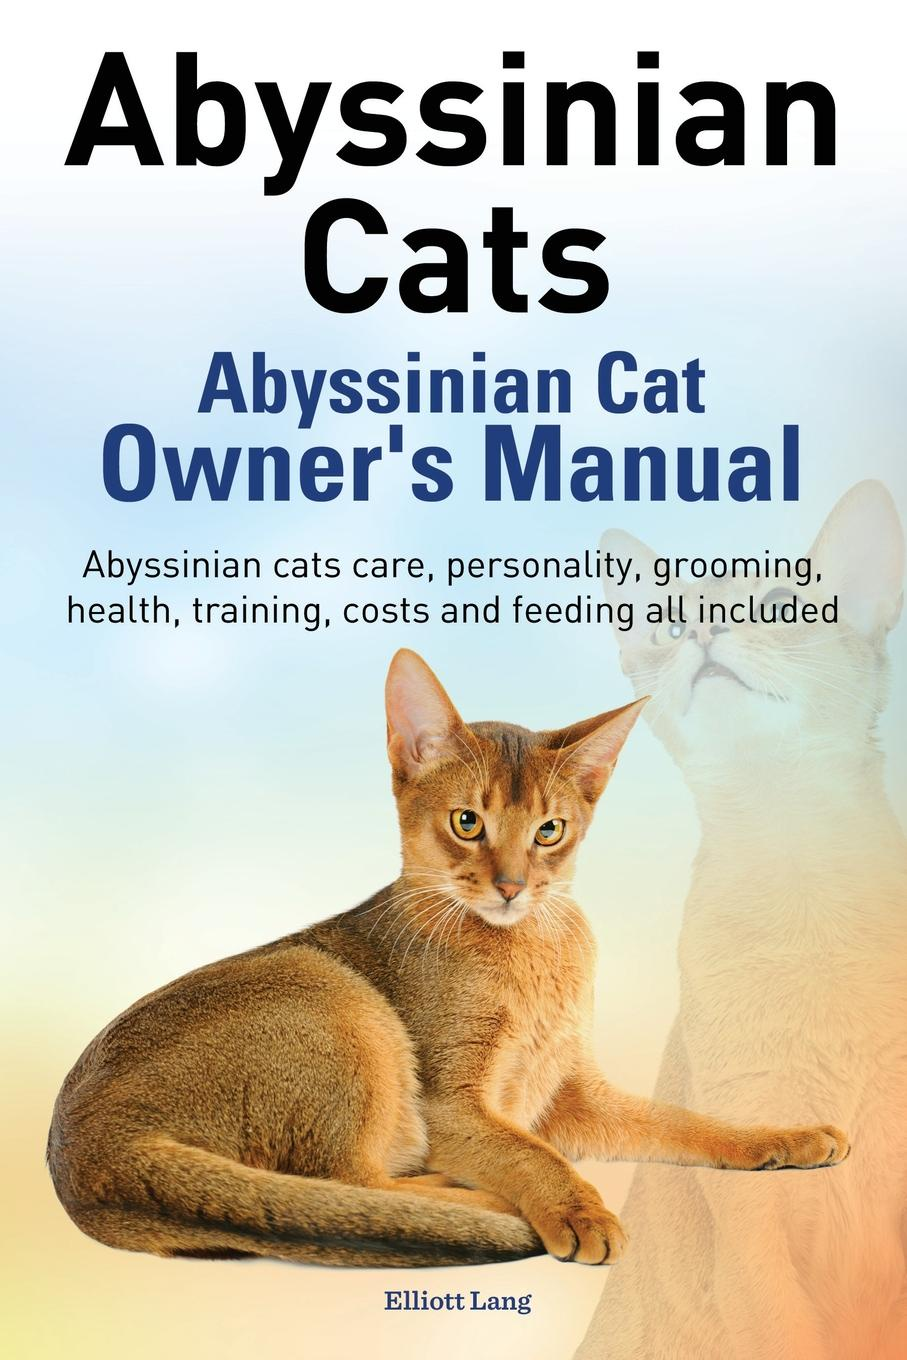 Elliott Lang Abyssinian Cats. Abyssinian Cat Owner's Manual. Abyssinian Cats Care, Personality, Grooming, Health, Training, Costs and Feeding All Included. цена в Москве и Питере